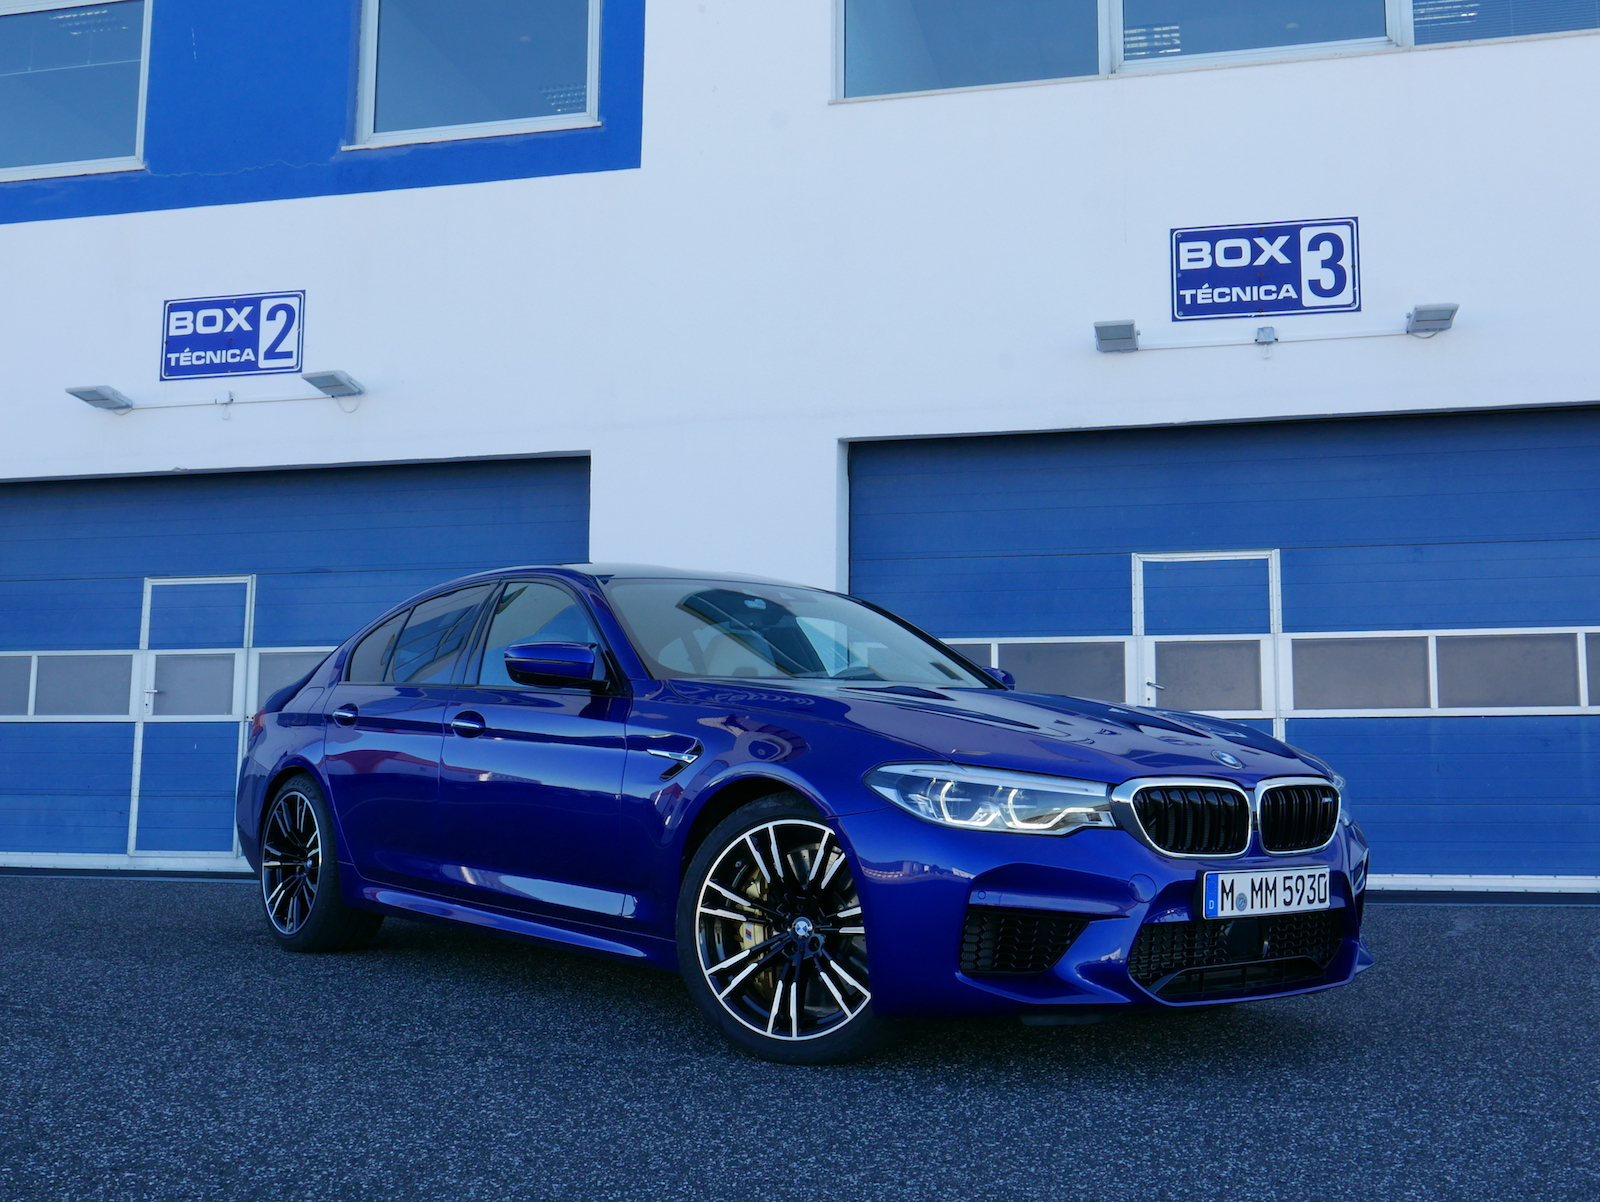 2018 bmw m5 first drive review bmw m5 forum and m6 forums. Black Bedroom Furniture Sets. Home Design Ideas